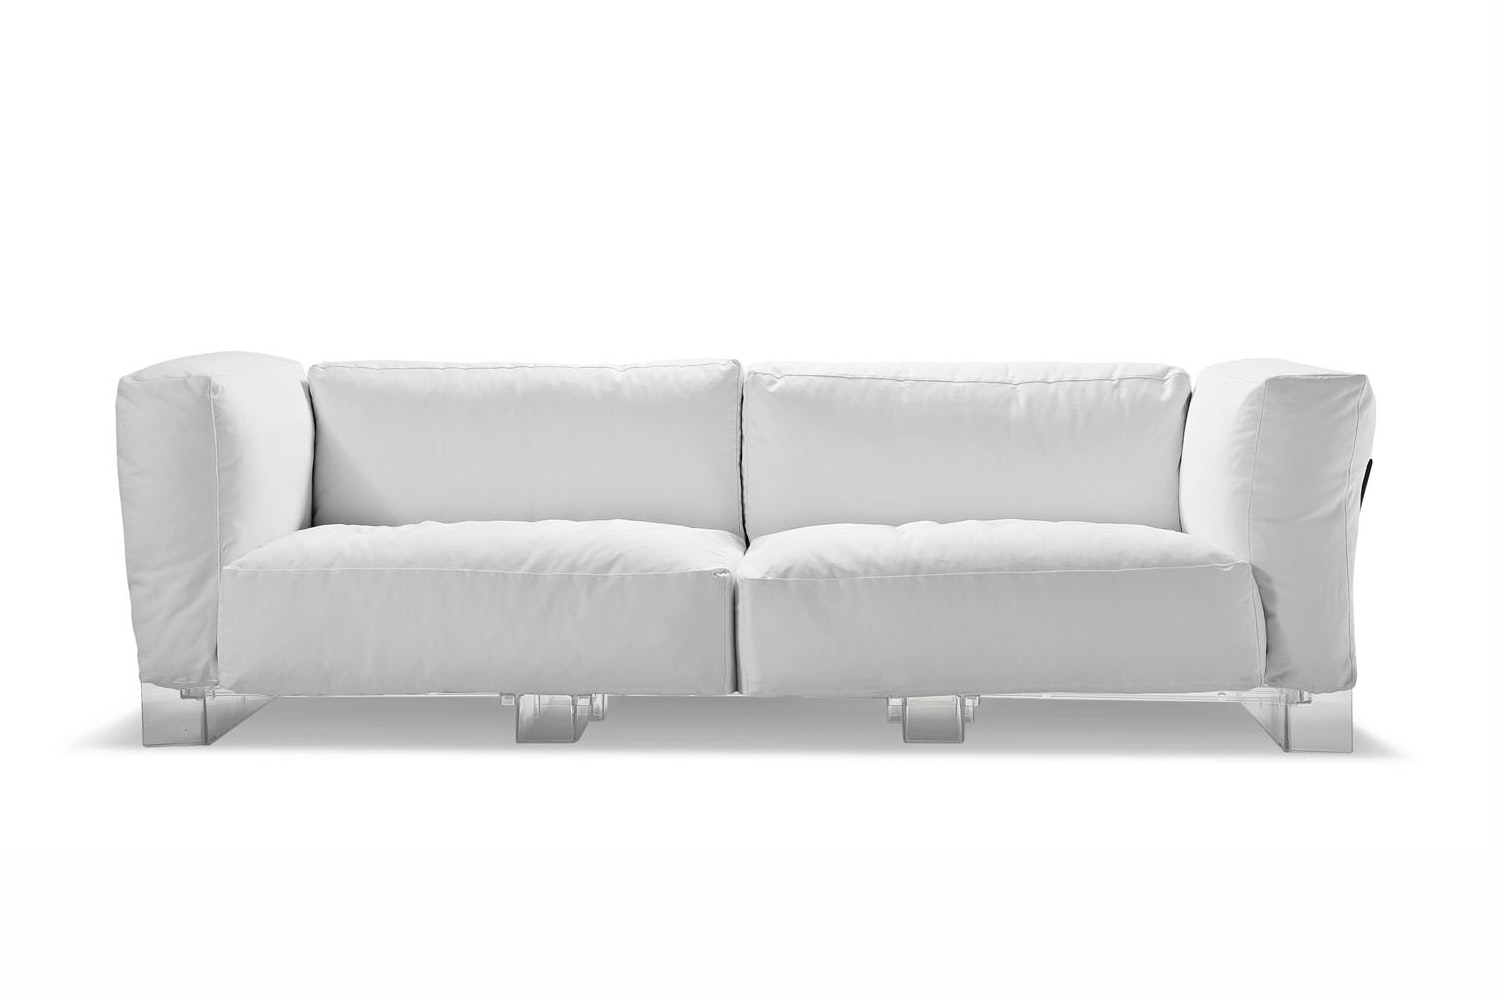 Pop Duo Sofa Transparent by Piero Lissoni with Carlo Tamborini for Kartell